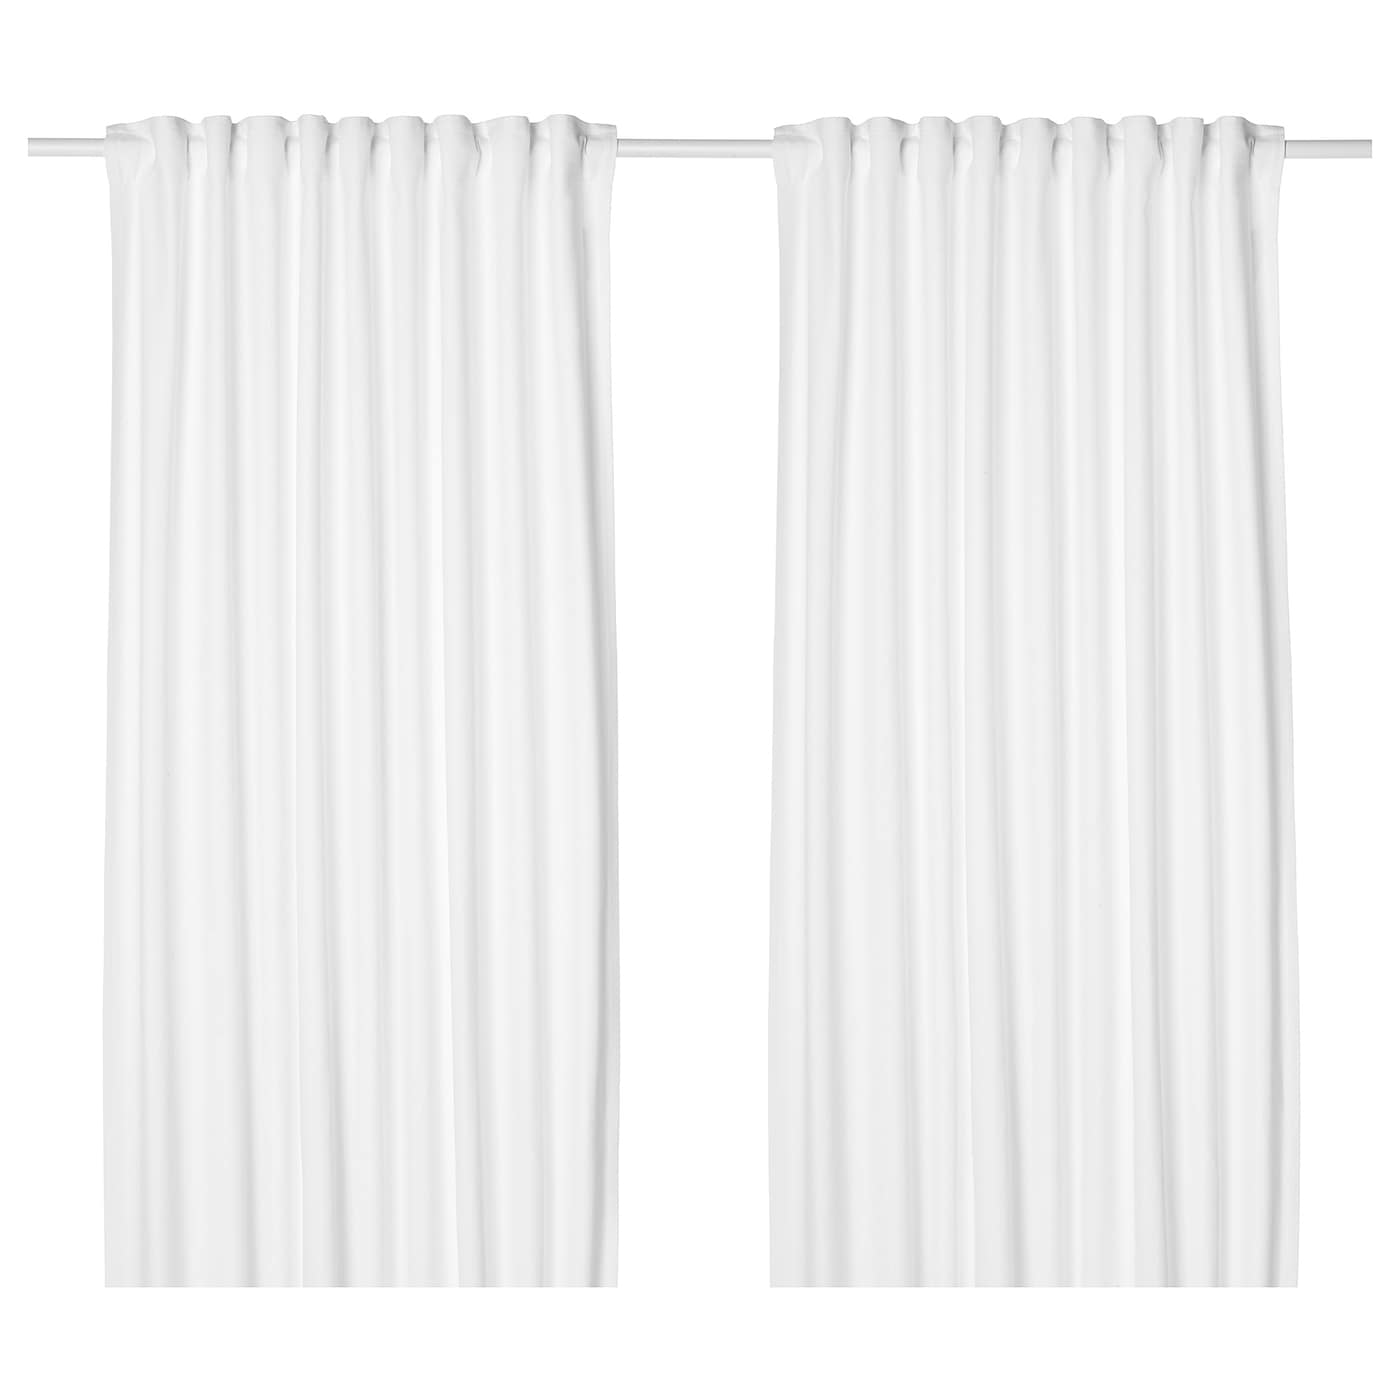 tibast curtains 1 pair white 145 x 250 cm ikea